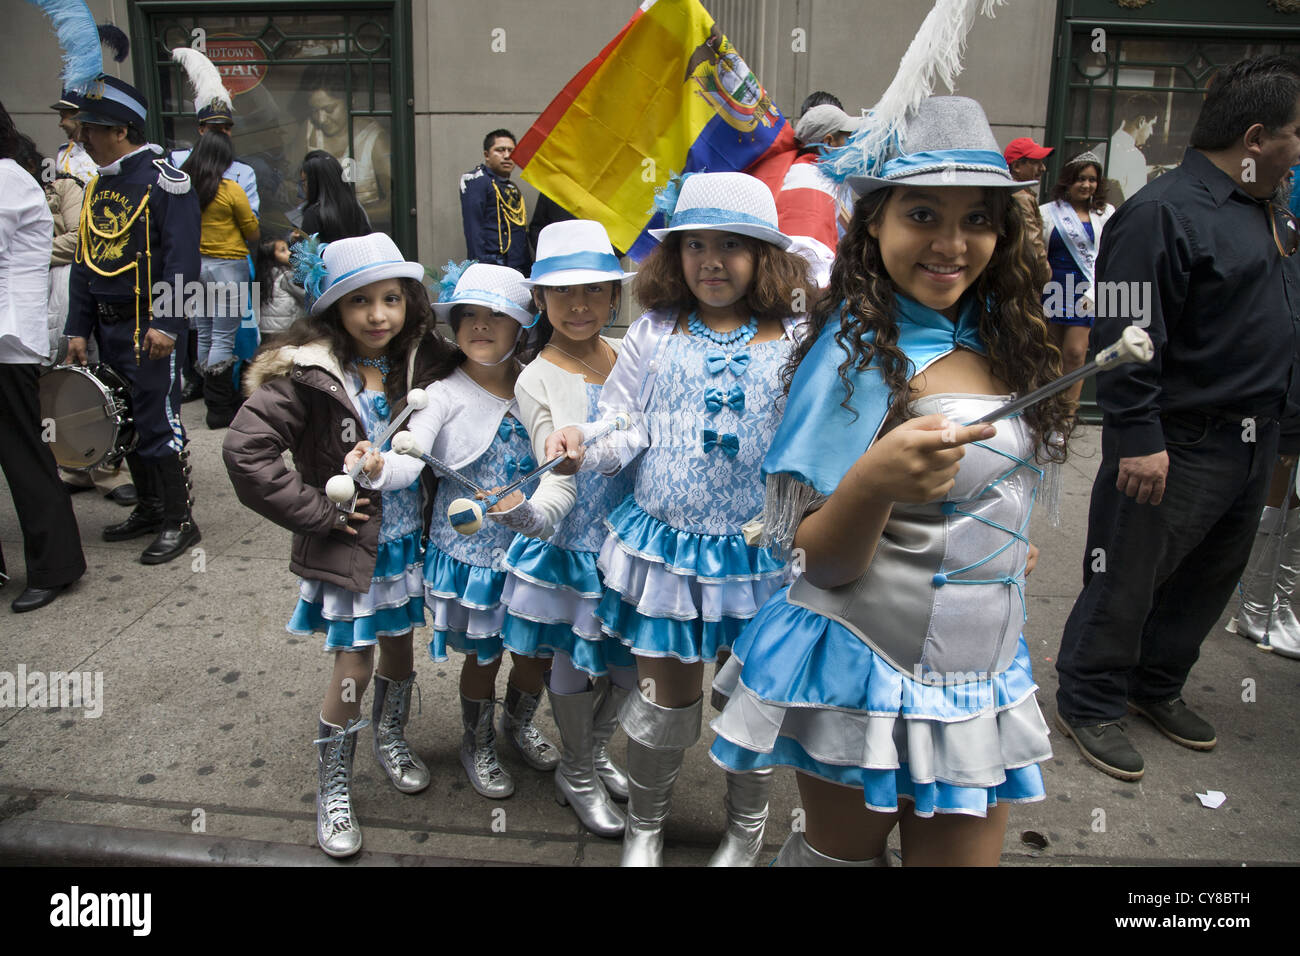 Hispanic Day Parade, New York City. Young female Guatemalan dance group. - Stock Image